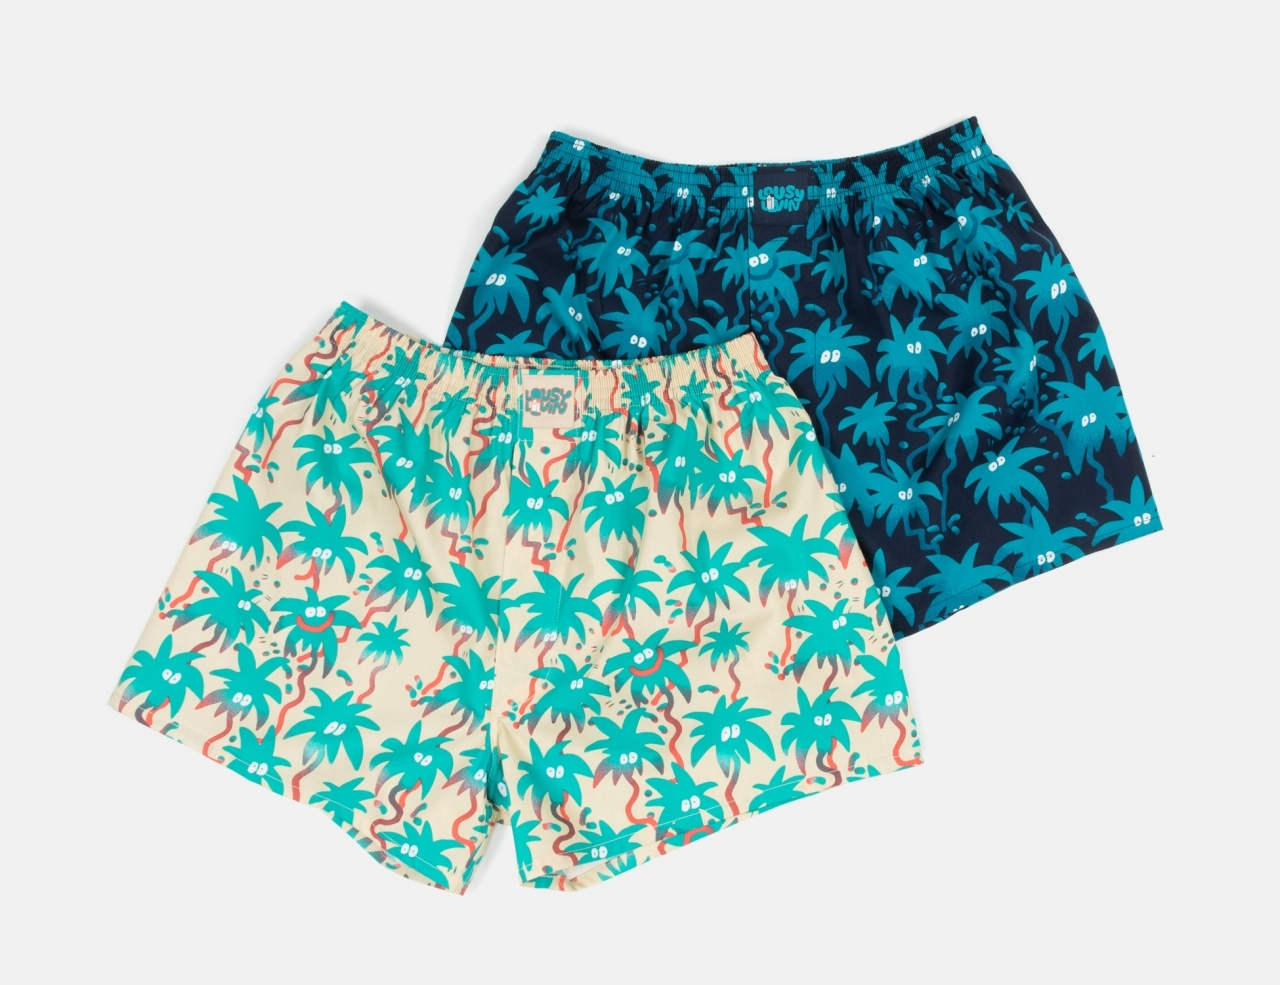 Lousy Livin 2 Pack Palm Boxershort - Navy & Macademia